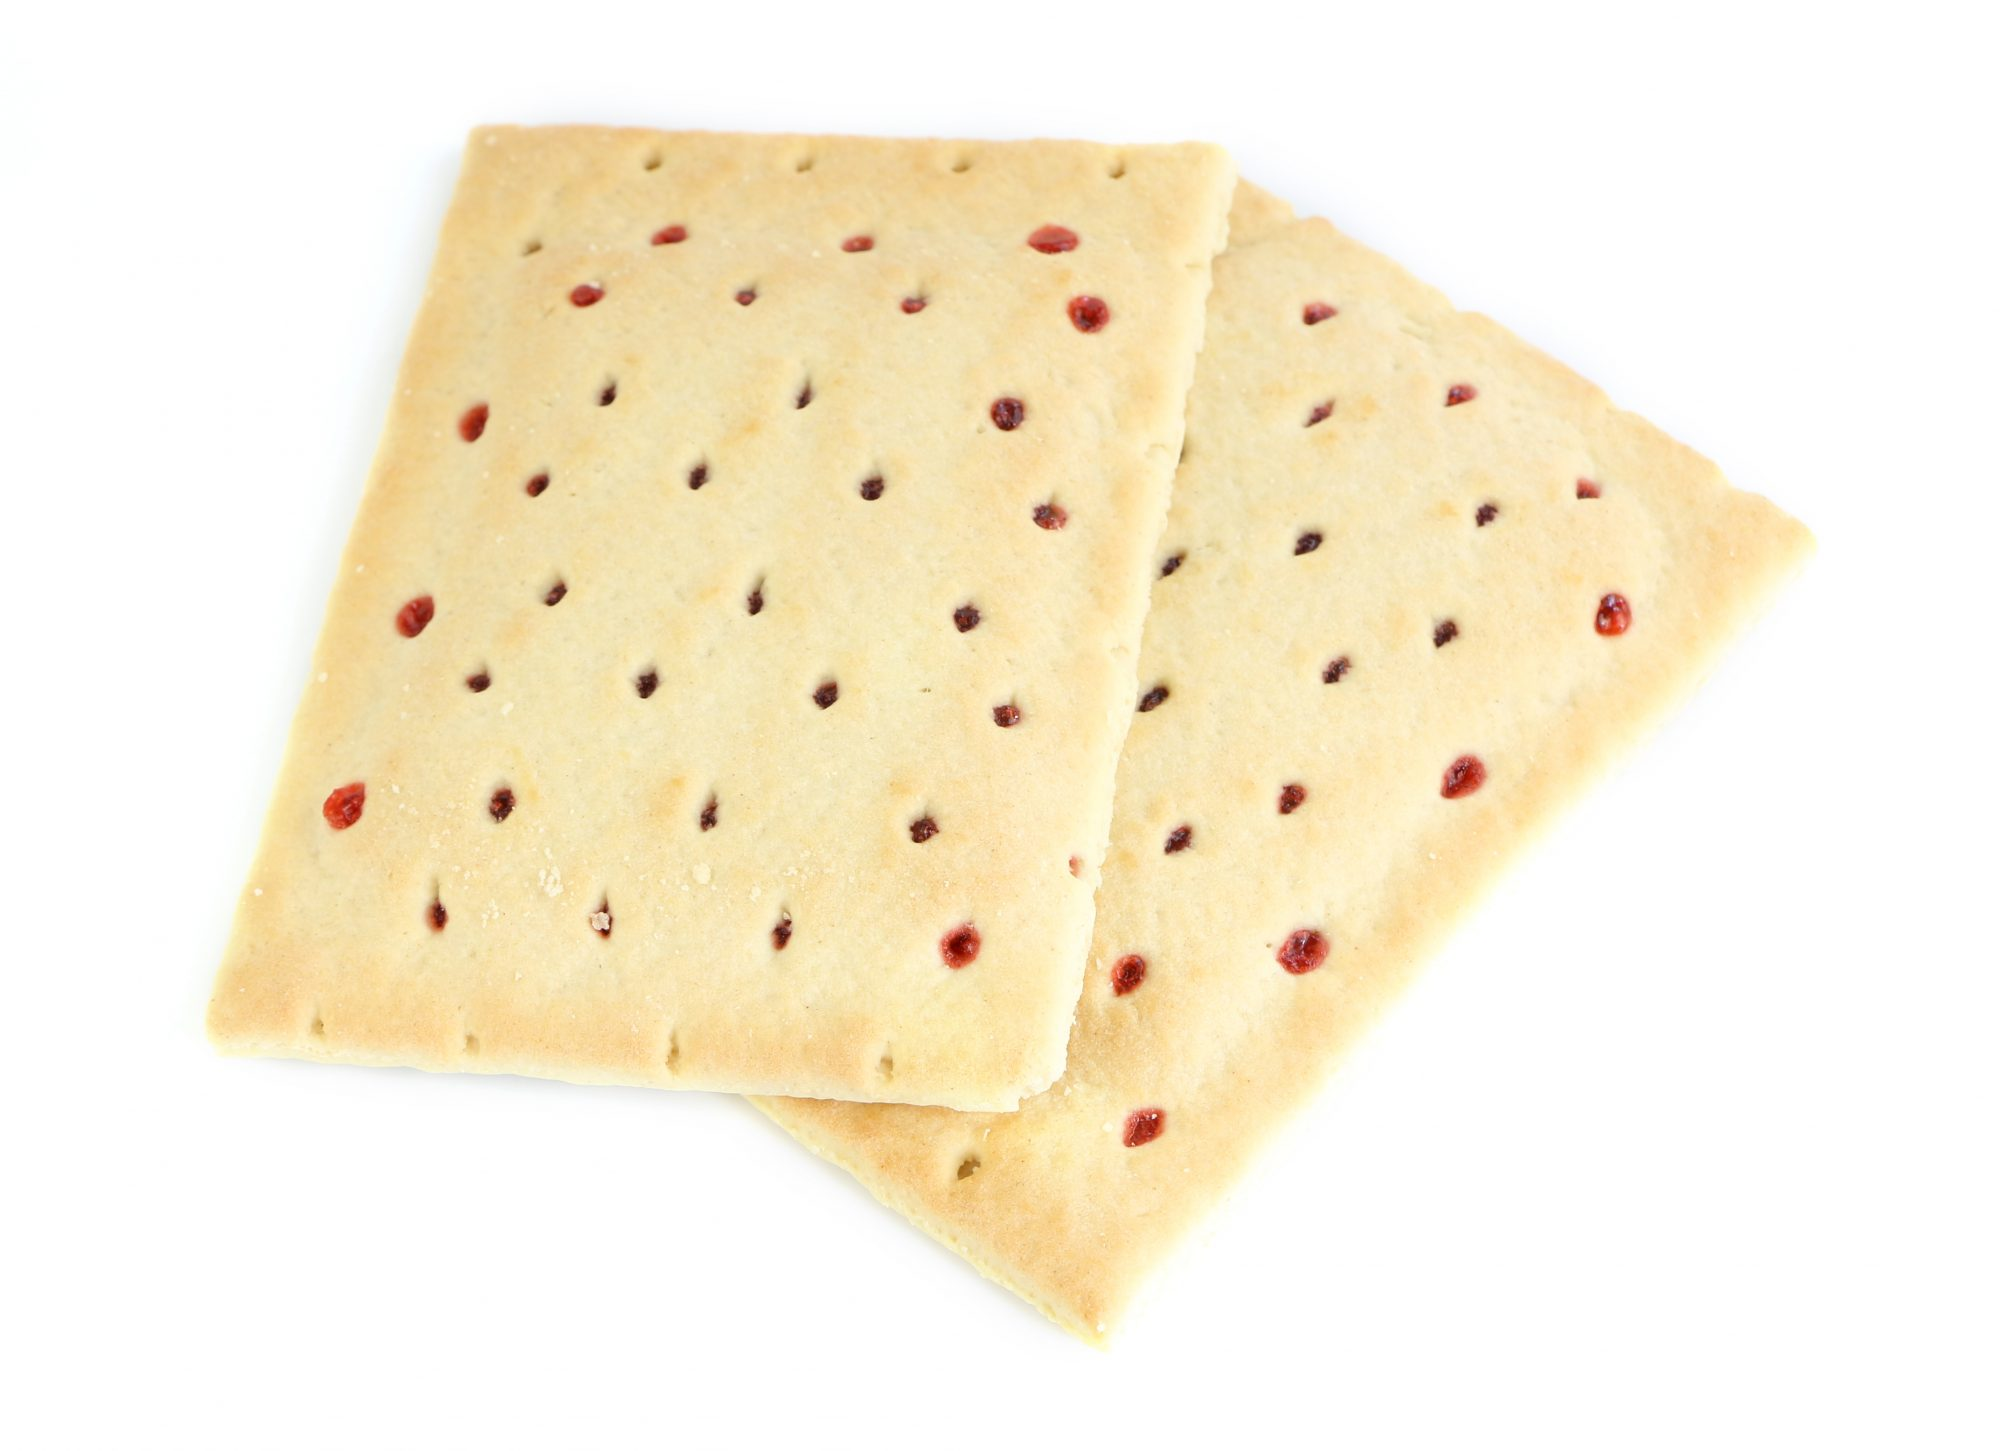 PopTarts on White Background